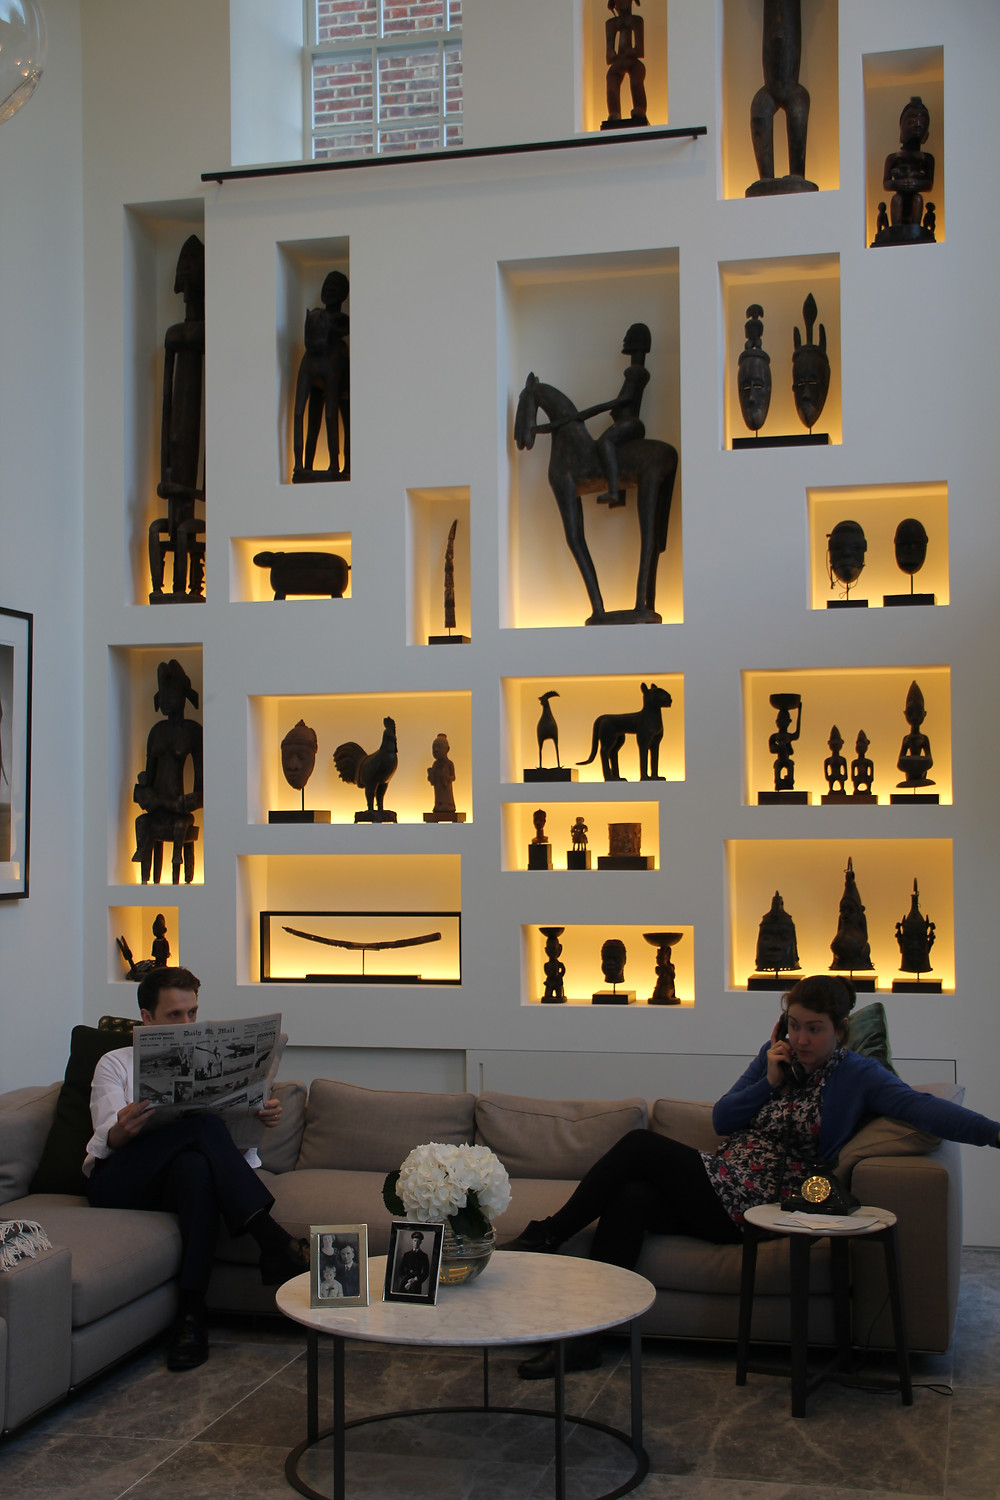 Incredible home decor with a wall full of small alcoves that fit african statues of all shapes and sizes